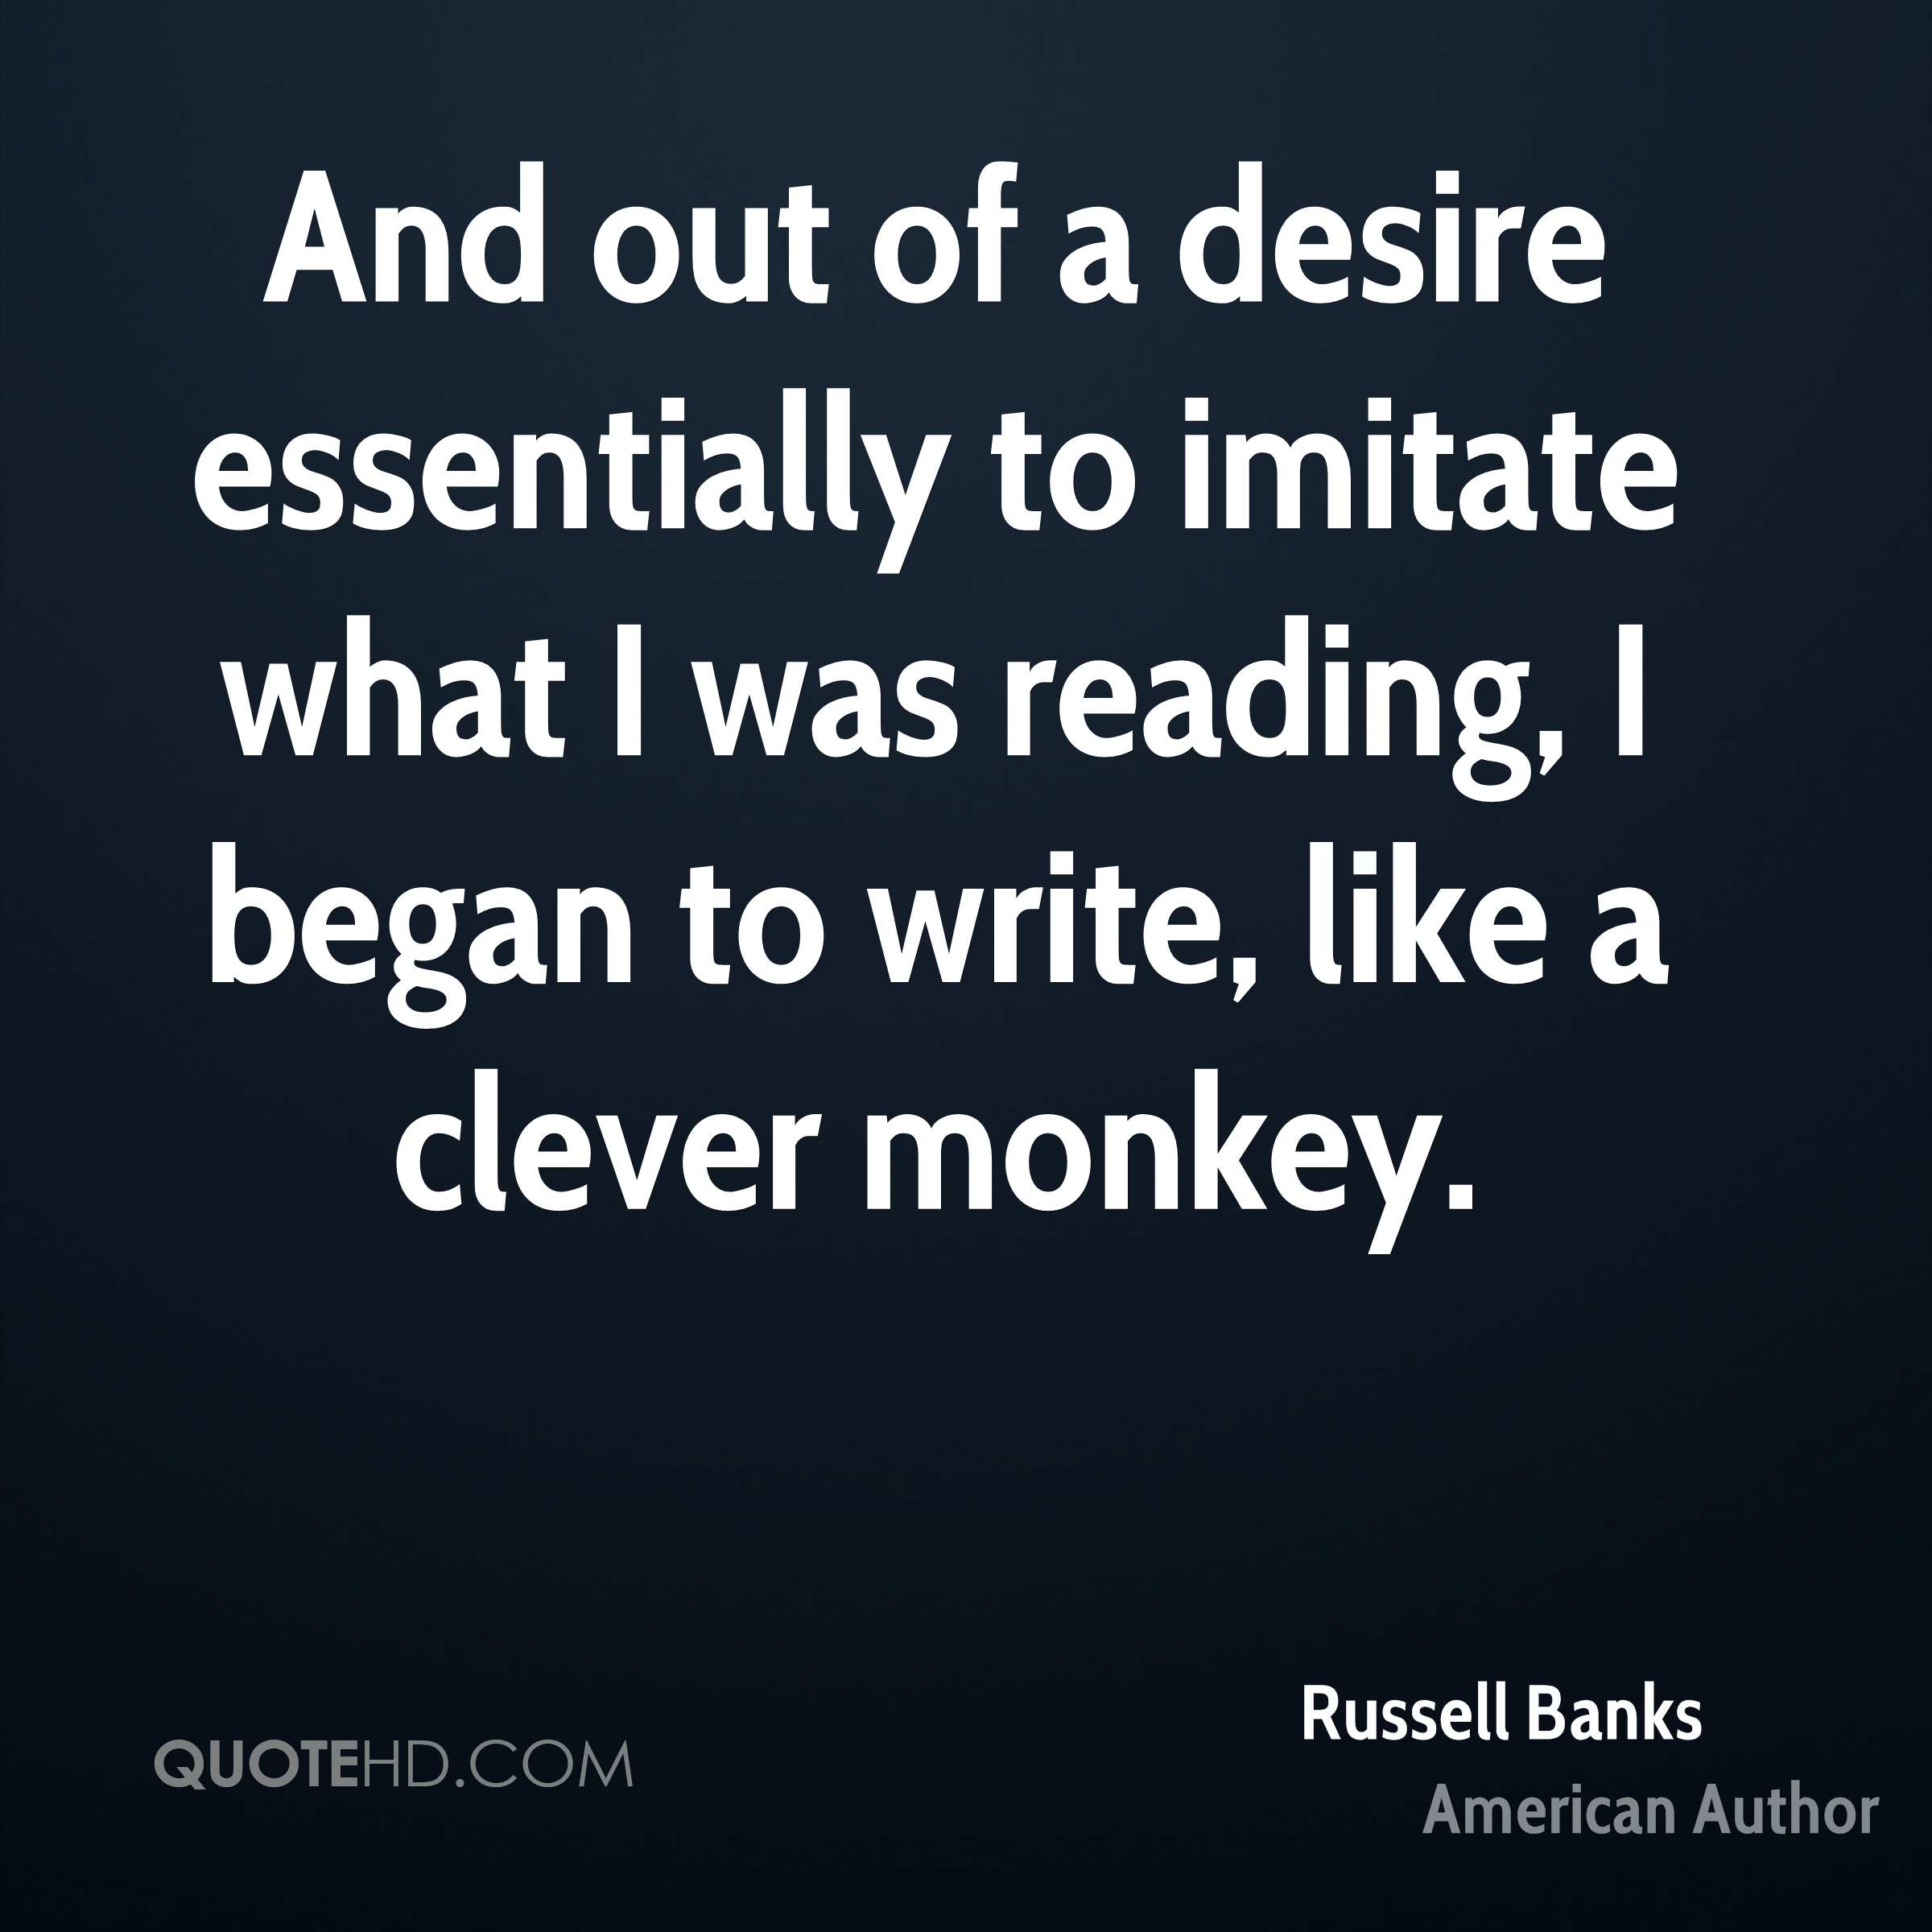 And out of a desire essentially to imitate what I was reading, I began to write, like a clever monkey.